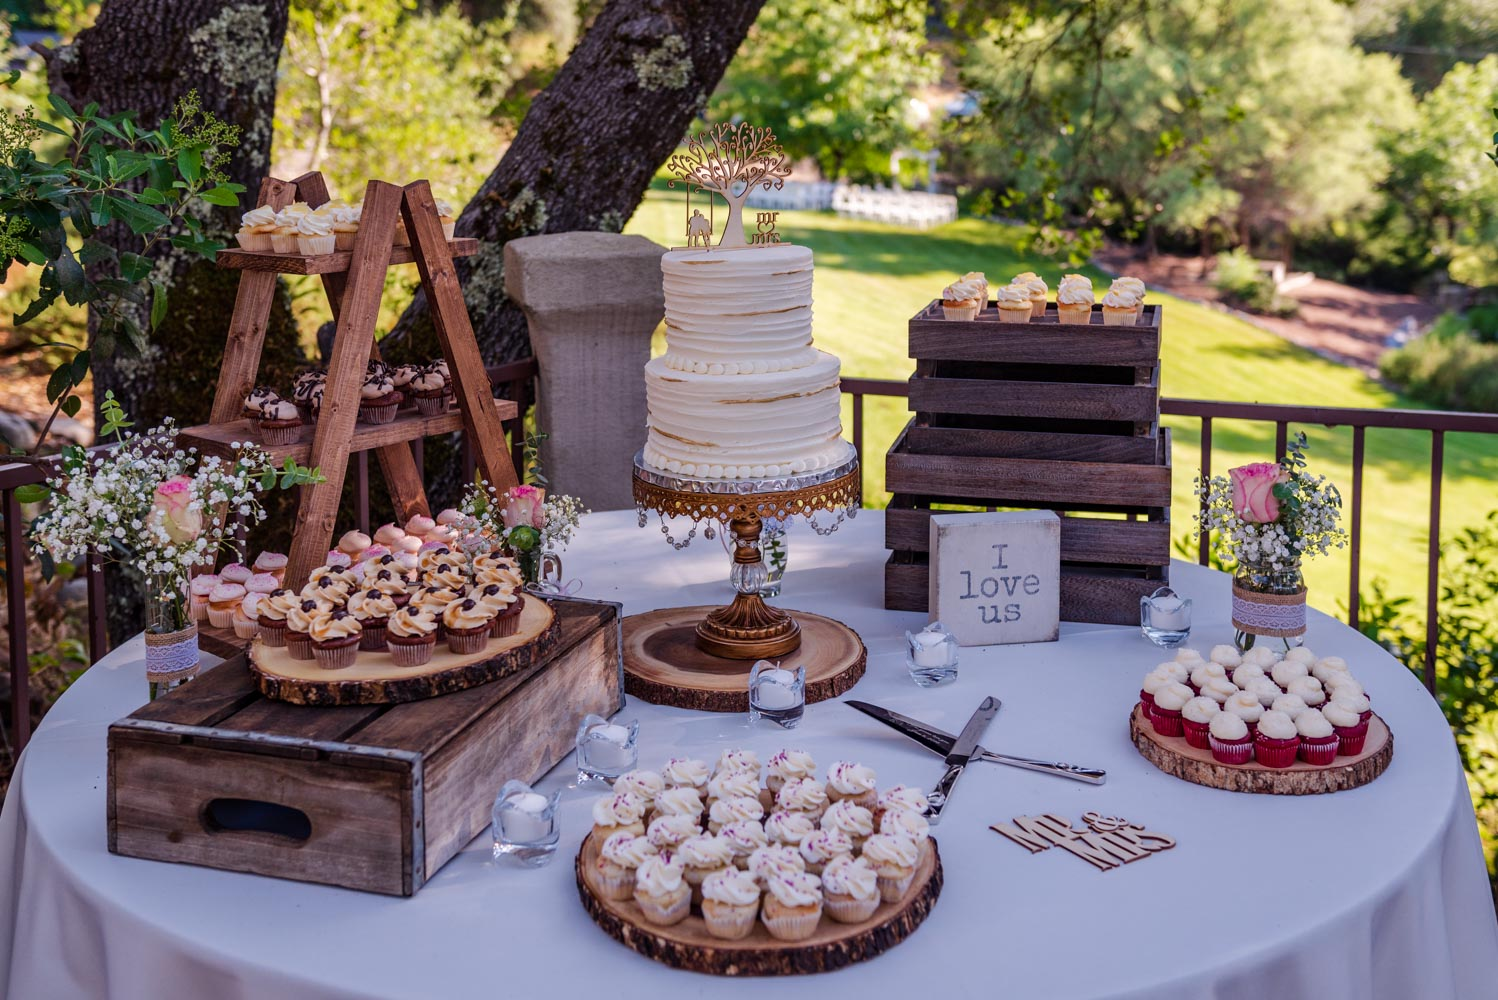 Linen-covered table with wedding cake and desserts